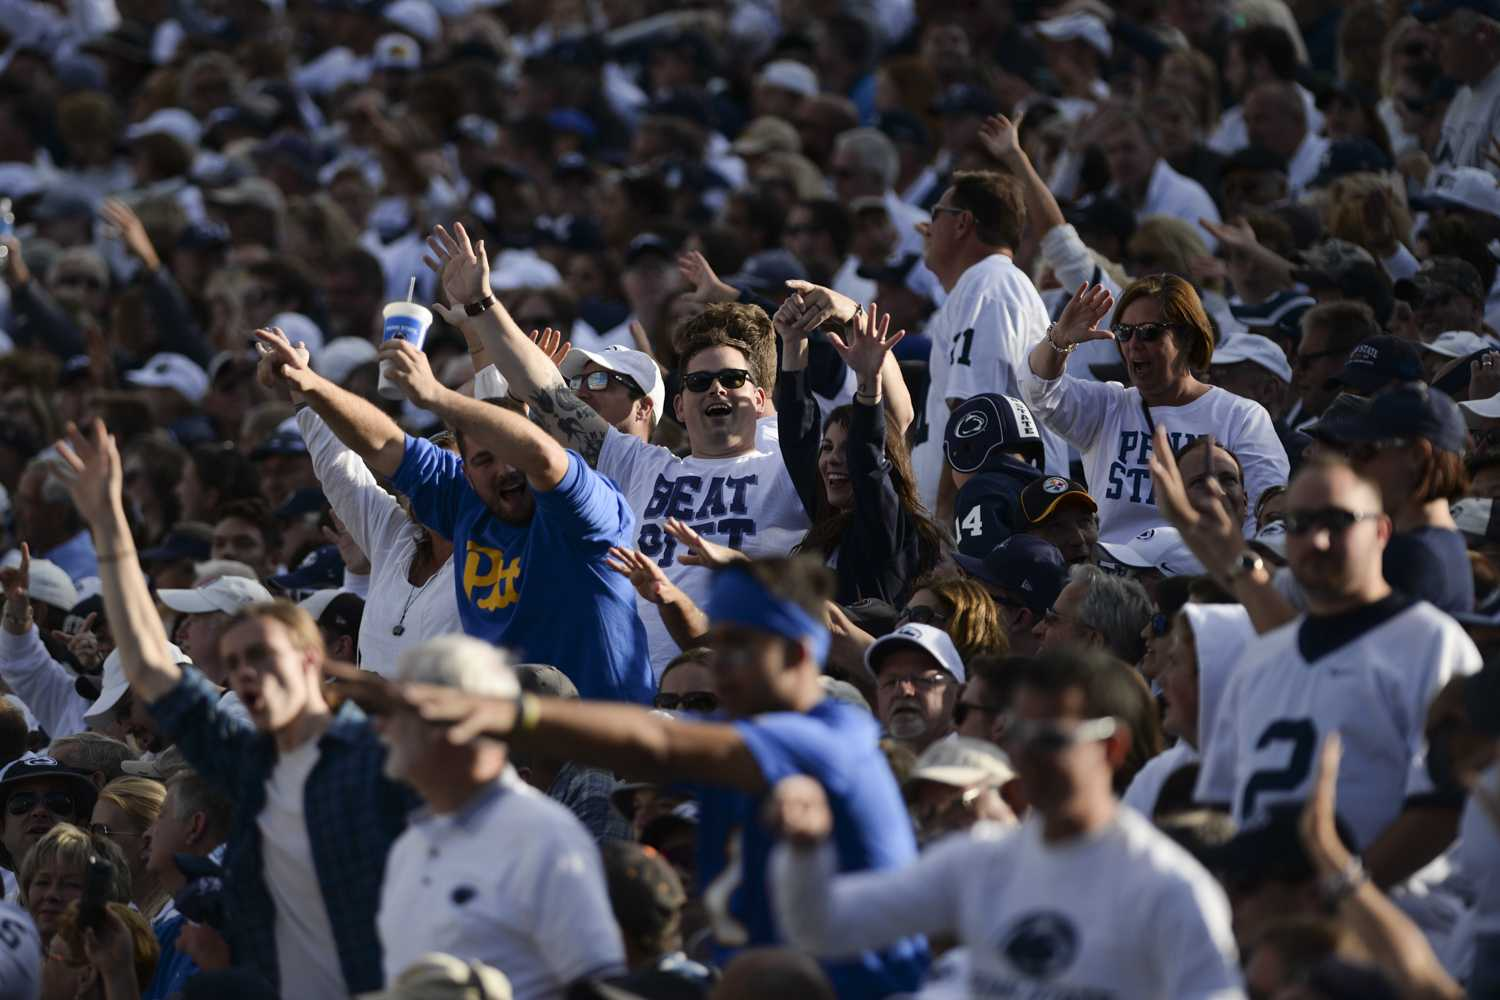 Pitt and Penn State fans cheer on their teams in the fourth quarter. (Anna Bongardino / Assistant Visual Editor)